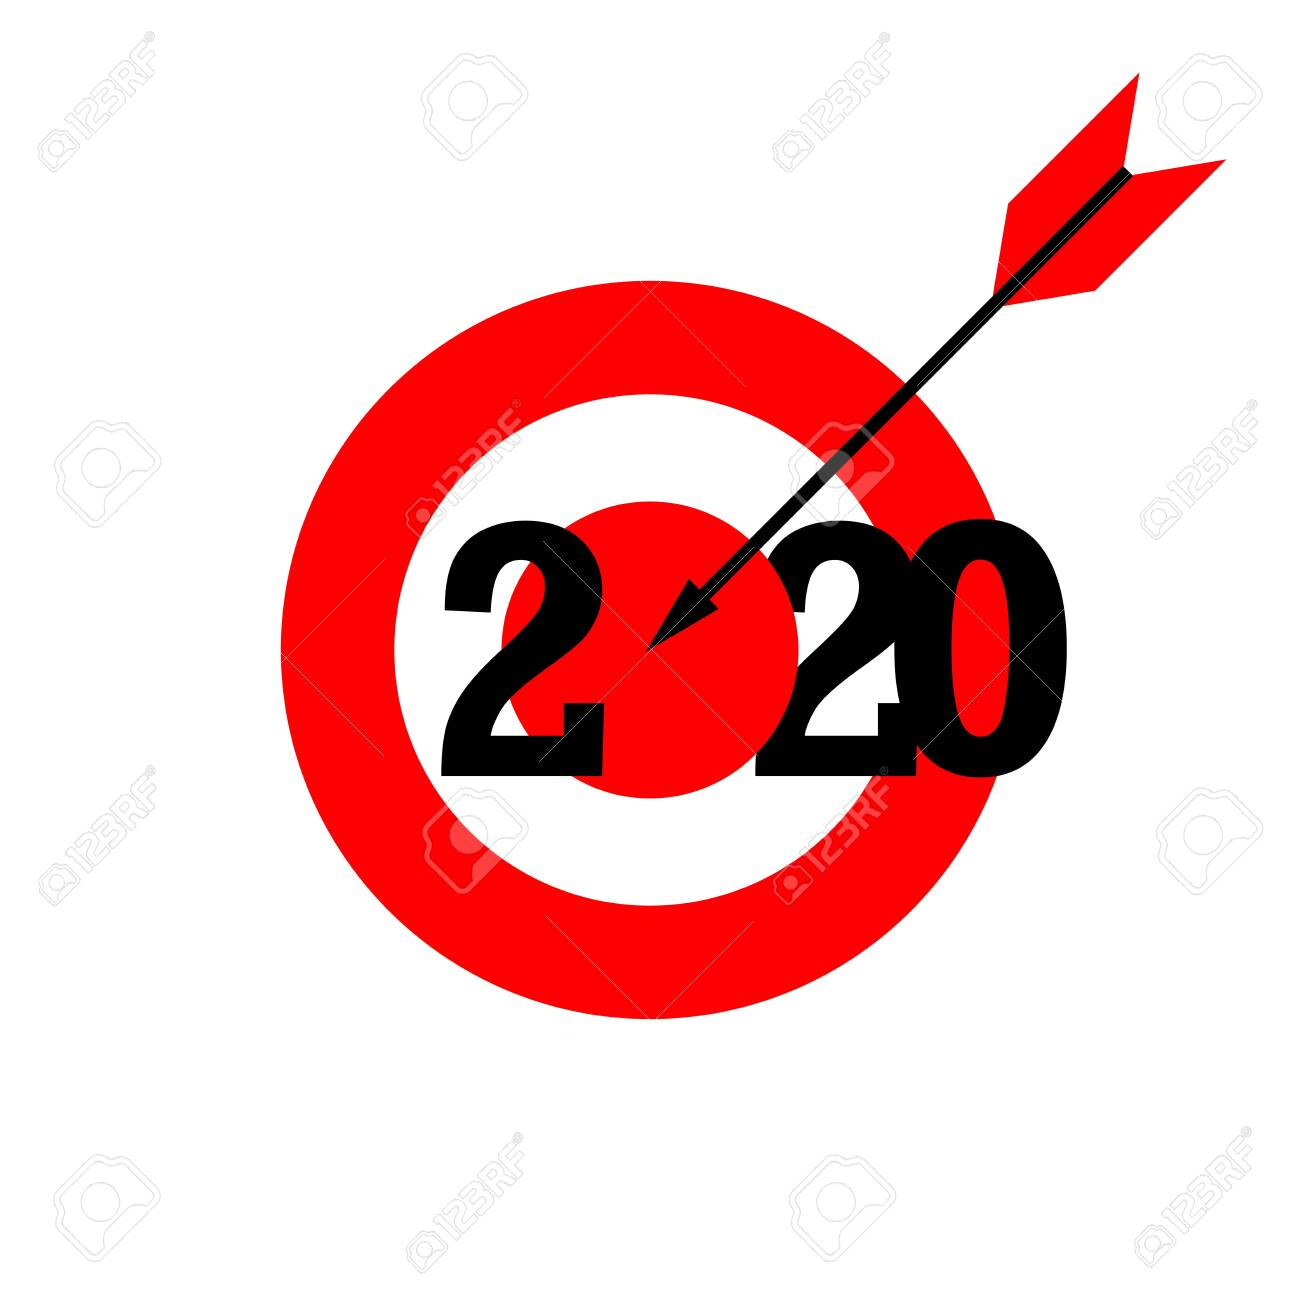 Christmas Arrow.Red Target Arrow 2020 Merry Christmas And Happy New Year 2020